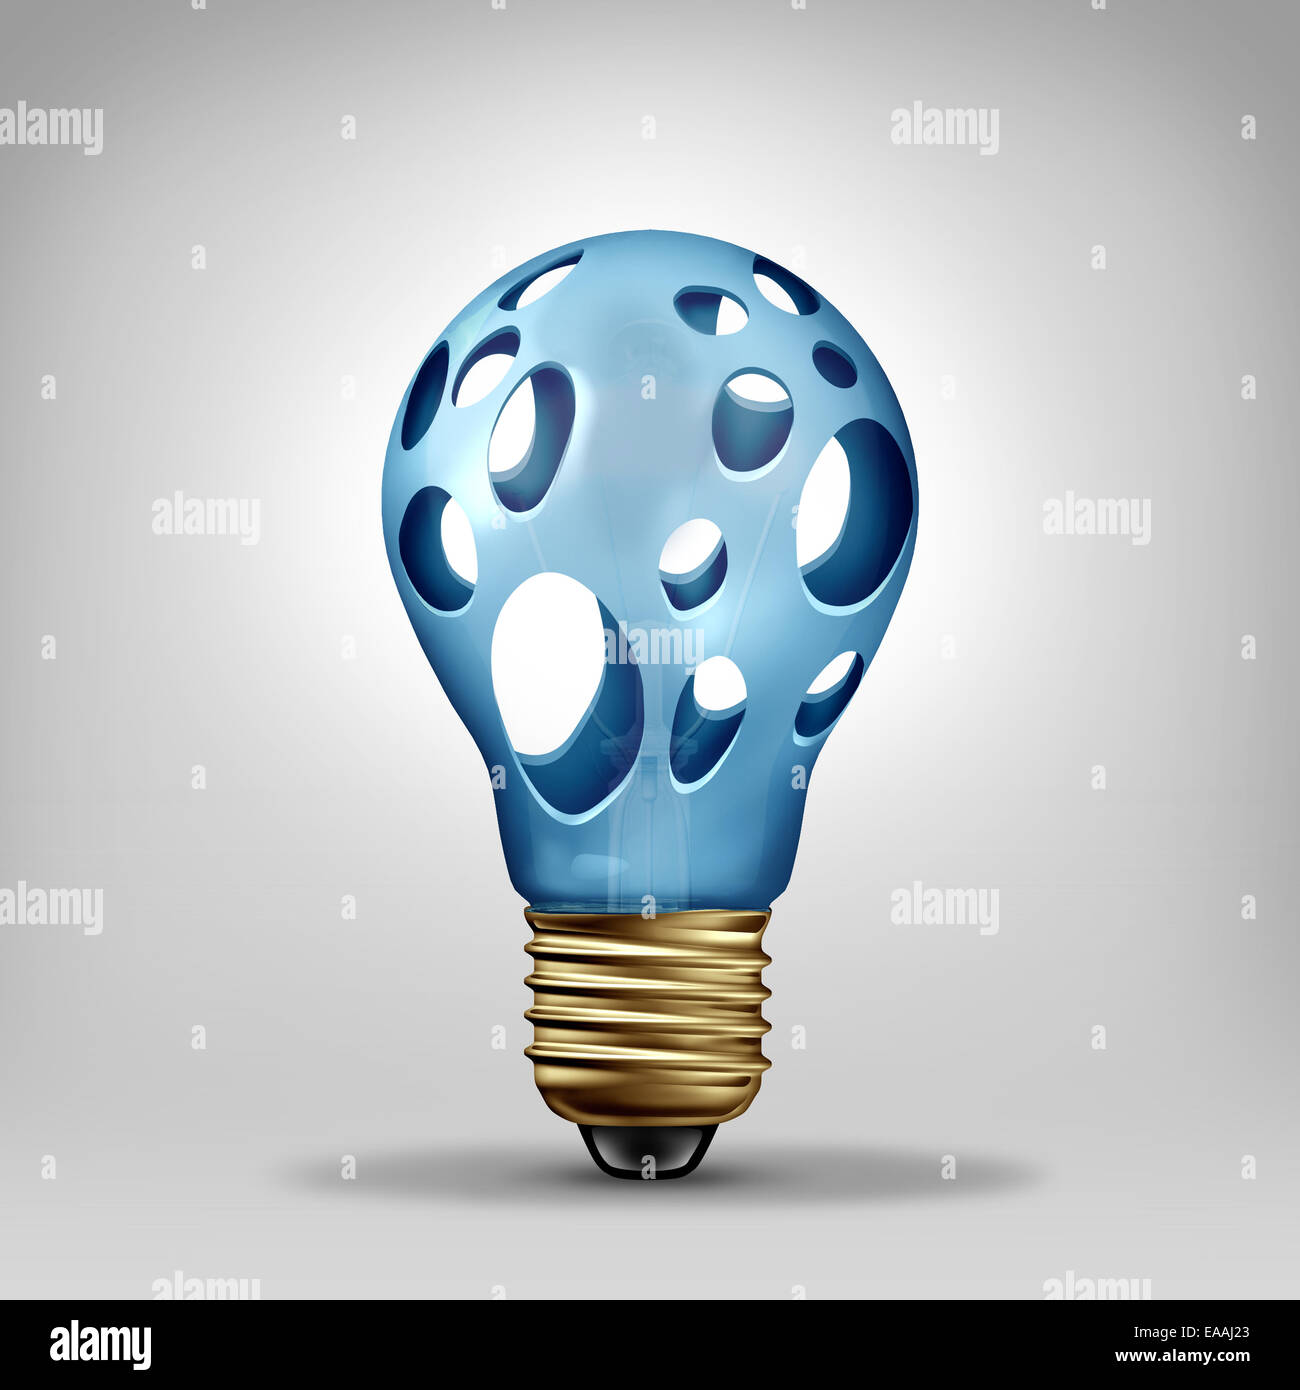 Idea problem concept and creativity crisis symbol as a lightbulb with empty holes as an icon for investing in new - Stock Image